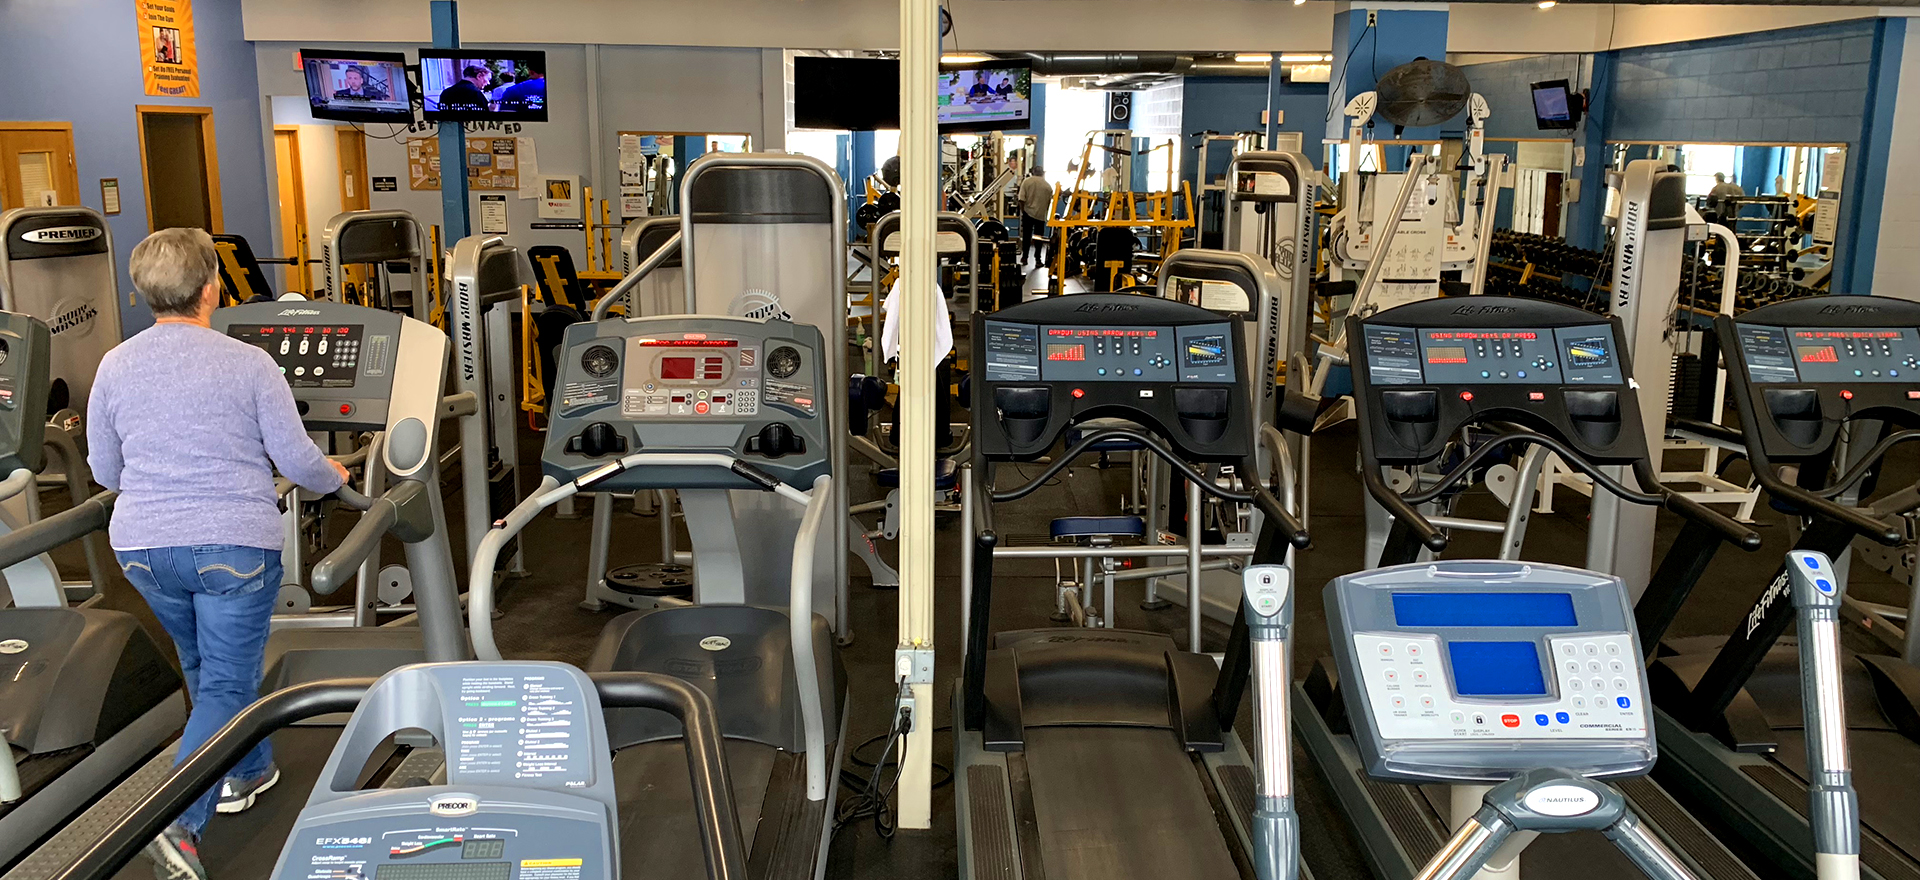 All About Family Fitness Center of North Muskegon, Michigan